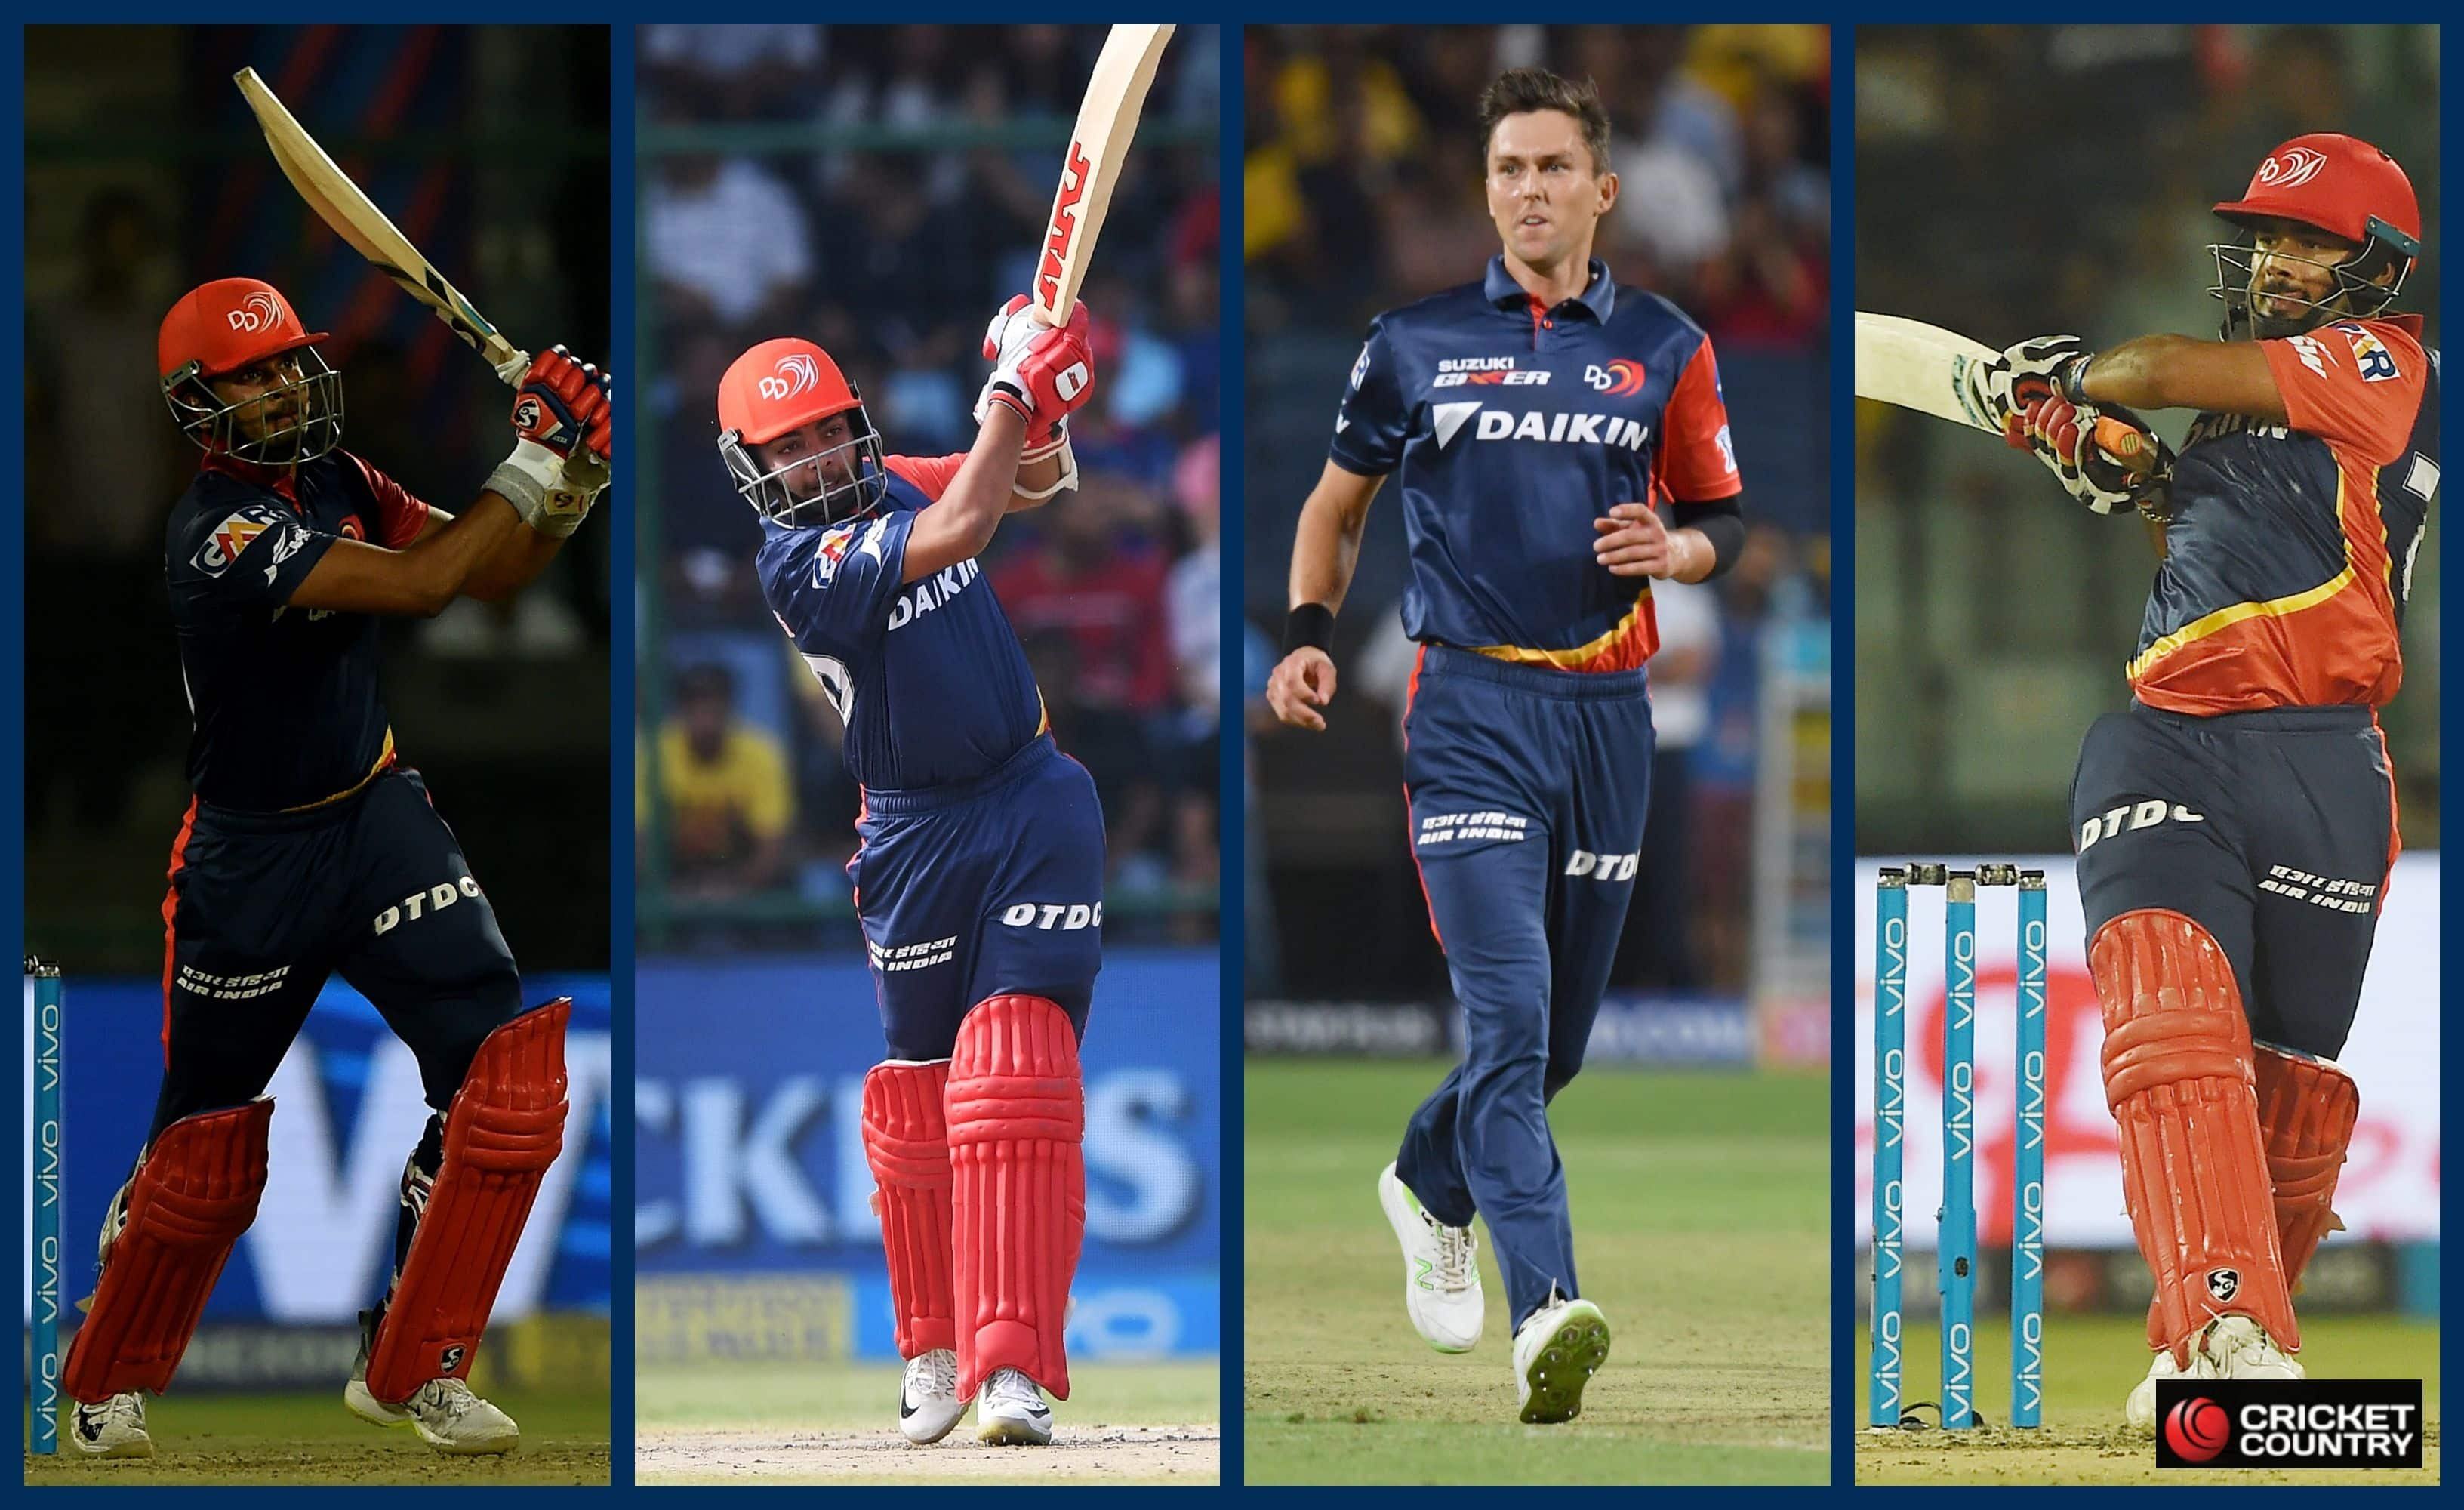 IPL 2019 (Preview): With strong batting and bowling lineup, Delhi Capitals have chance to make impact